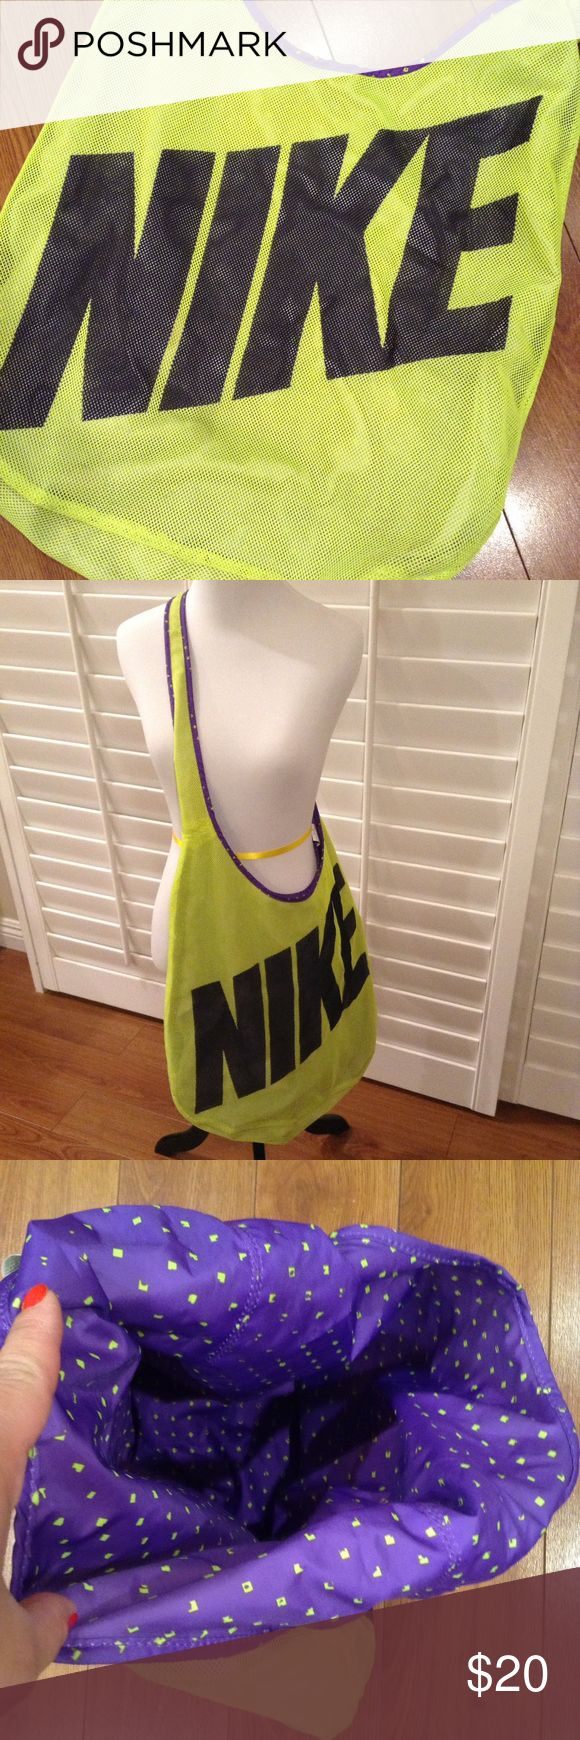 🌟Reversible NIKE Mesh Tote Bag🌟 EUC!! Perfect for Gym use! Easy to clean material. Yellow mesh outer with a purple windbreaker type material on the inside. No damage. Thanks for looking! Nike Bags Totes